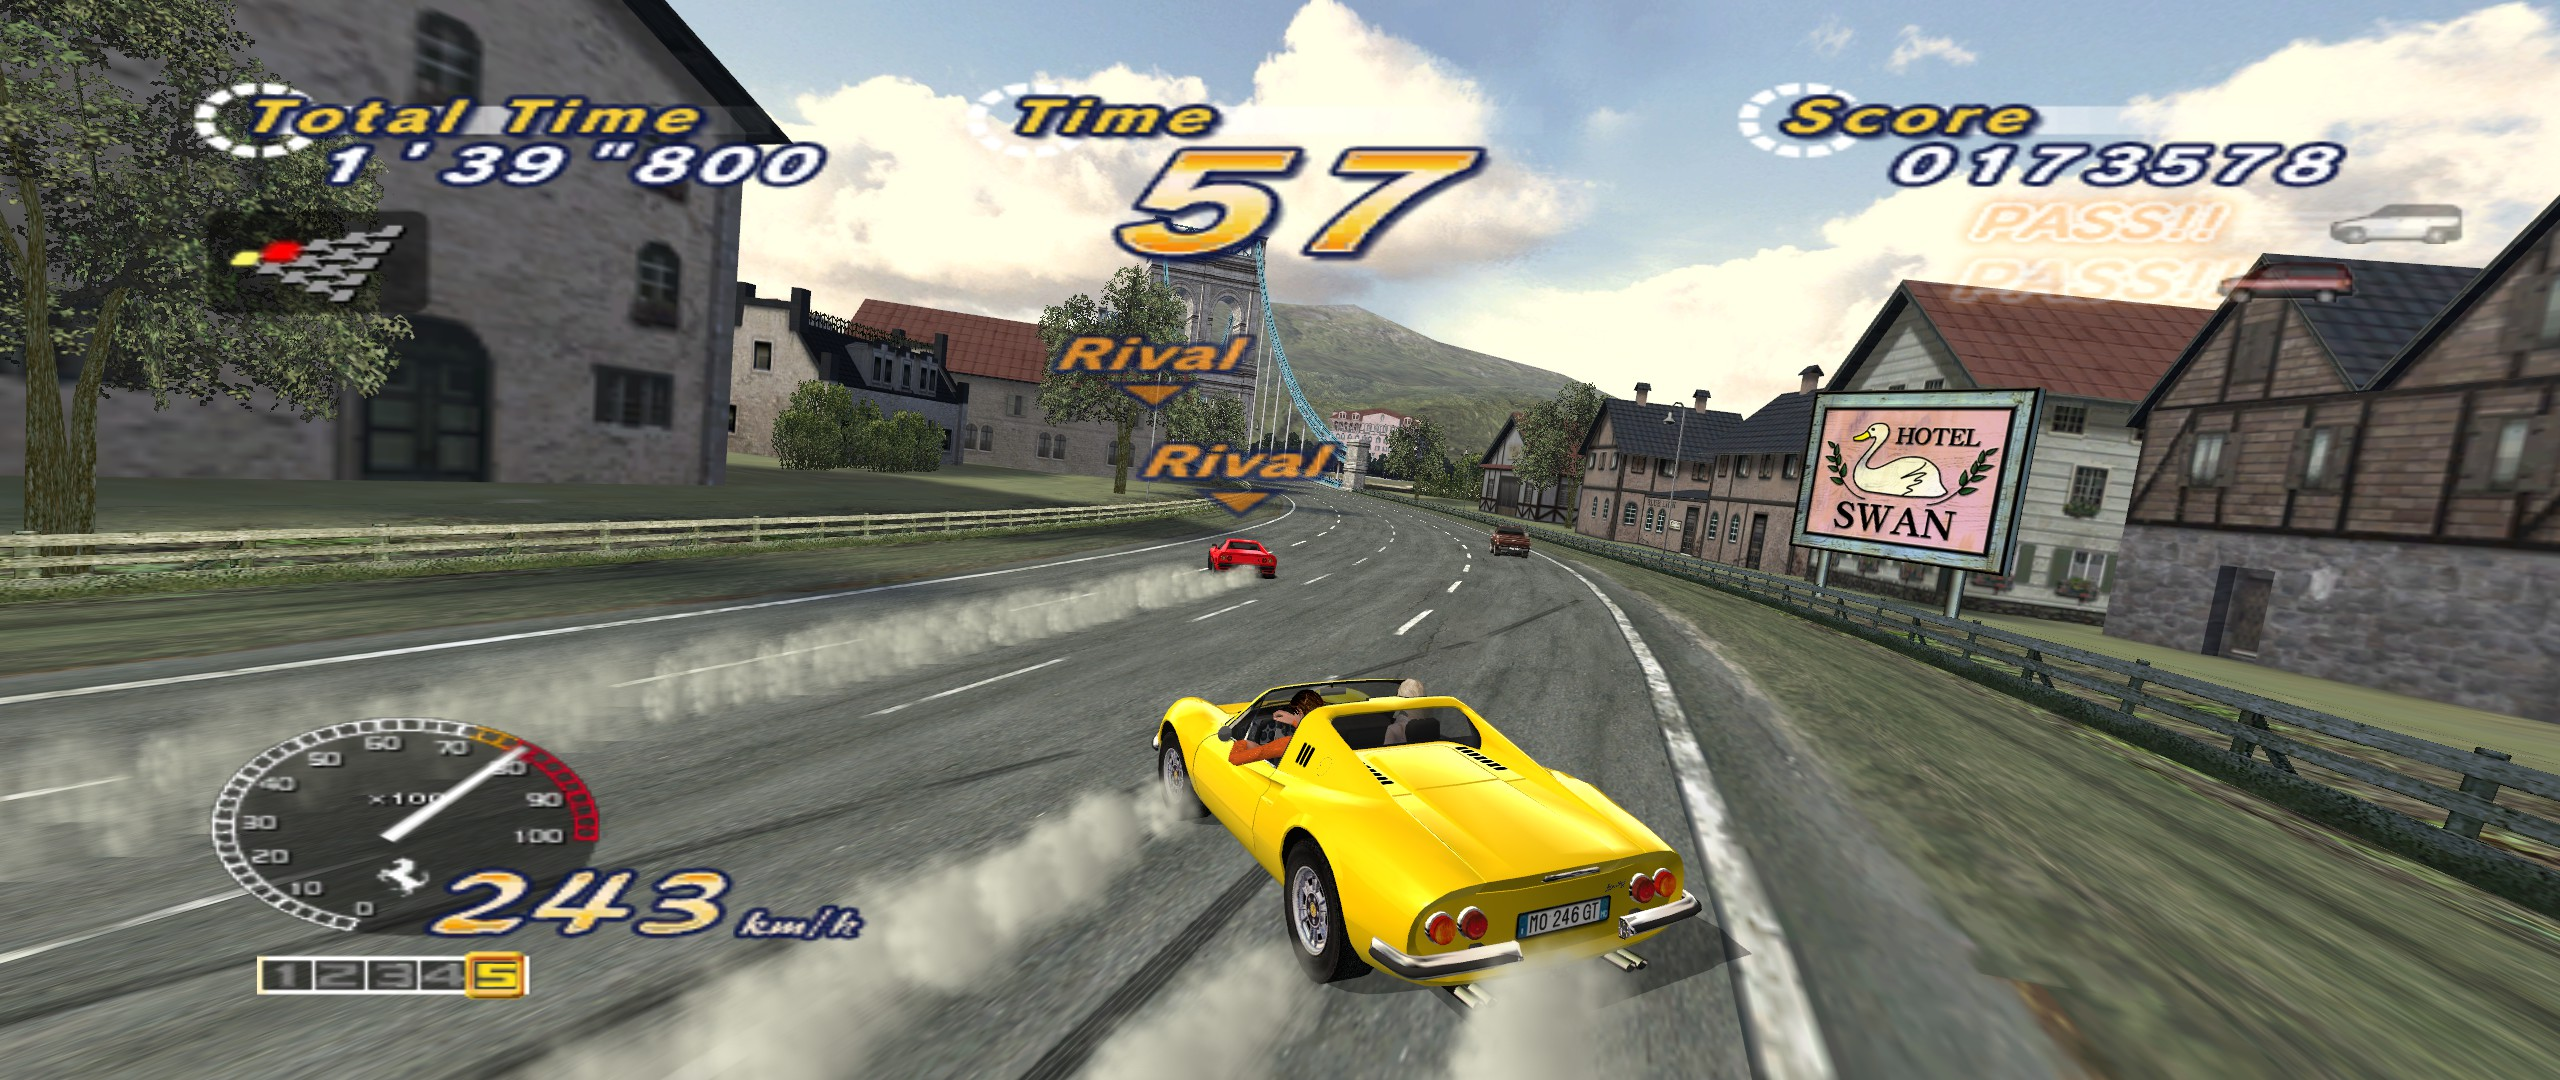 outrun 2006 coast 2 coast pc crack